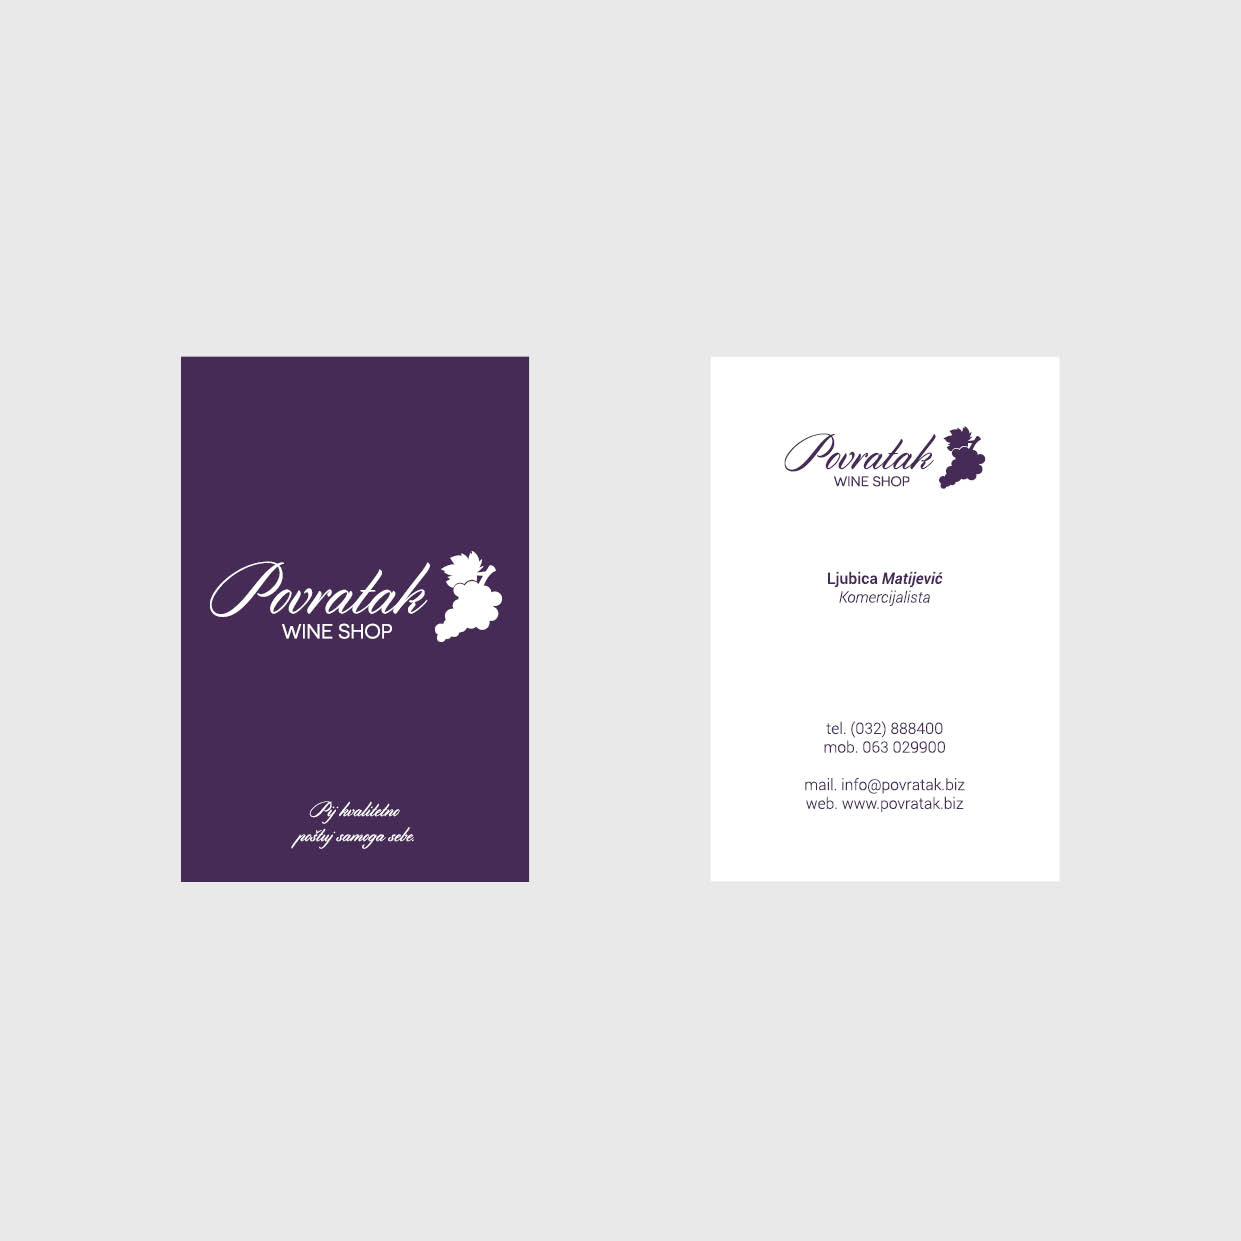 Stefania Stanga | Business Card and Roll-Up for Povratak – Wine Store